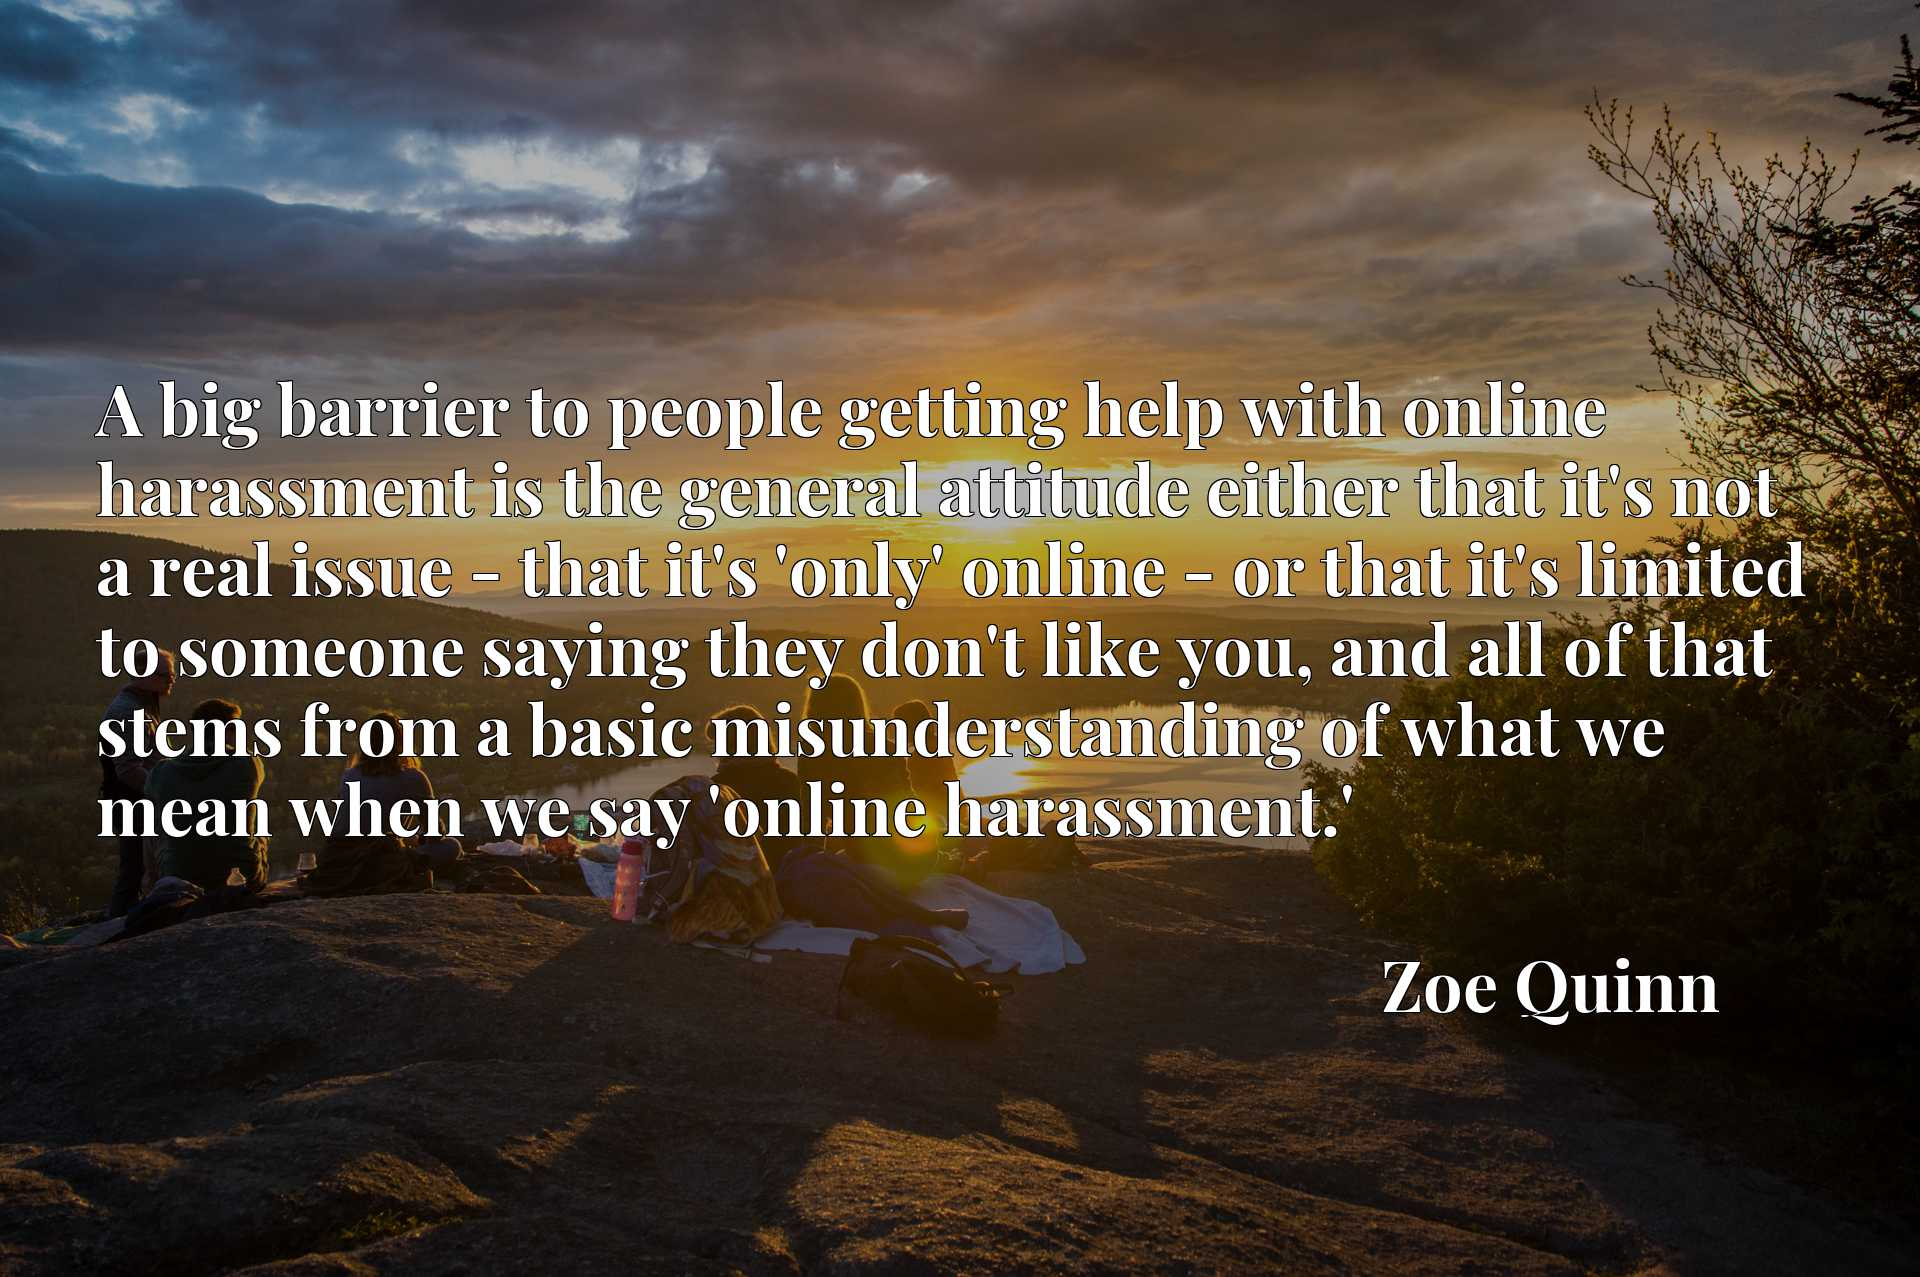 A big barrier to people getting help with online harassment is the general attitude either that it's not a real issue - that it's 'only' online - or that it's limited to someone saying they don't like you, and all of that stems from a basic misunderstanding of what we mean when we say 'online harassment.'